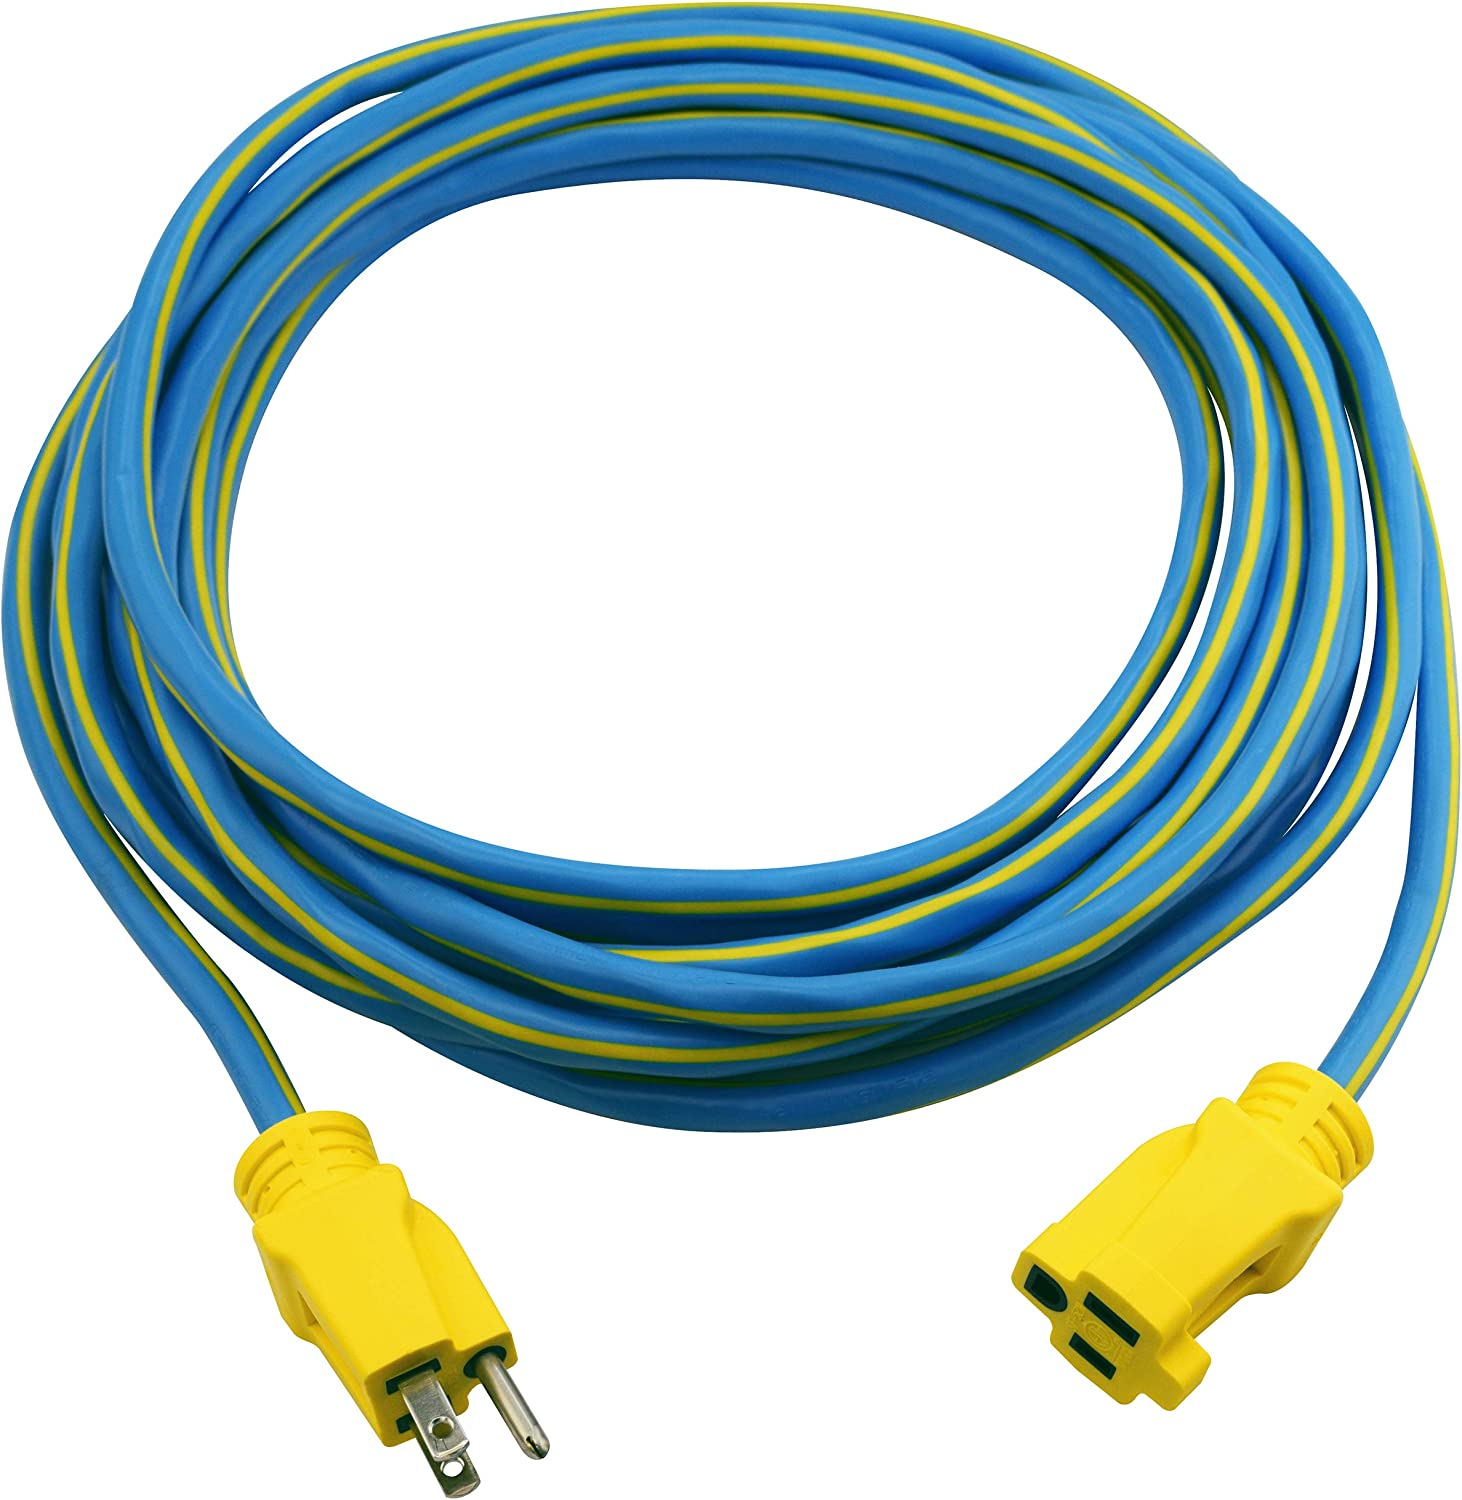 Clear Power 25 ft Heavy Duty Outdoor Extension Cord 14/3 SJTW, Blue&Yellow, Water & Weather Resistant, Flame Retardant, 3 Prong Grounded Plug, CP10132